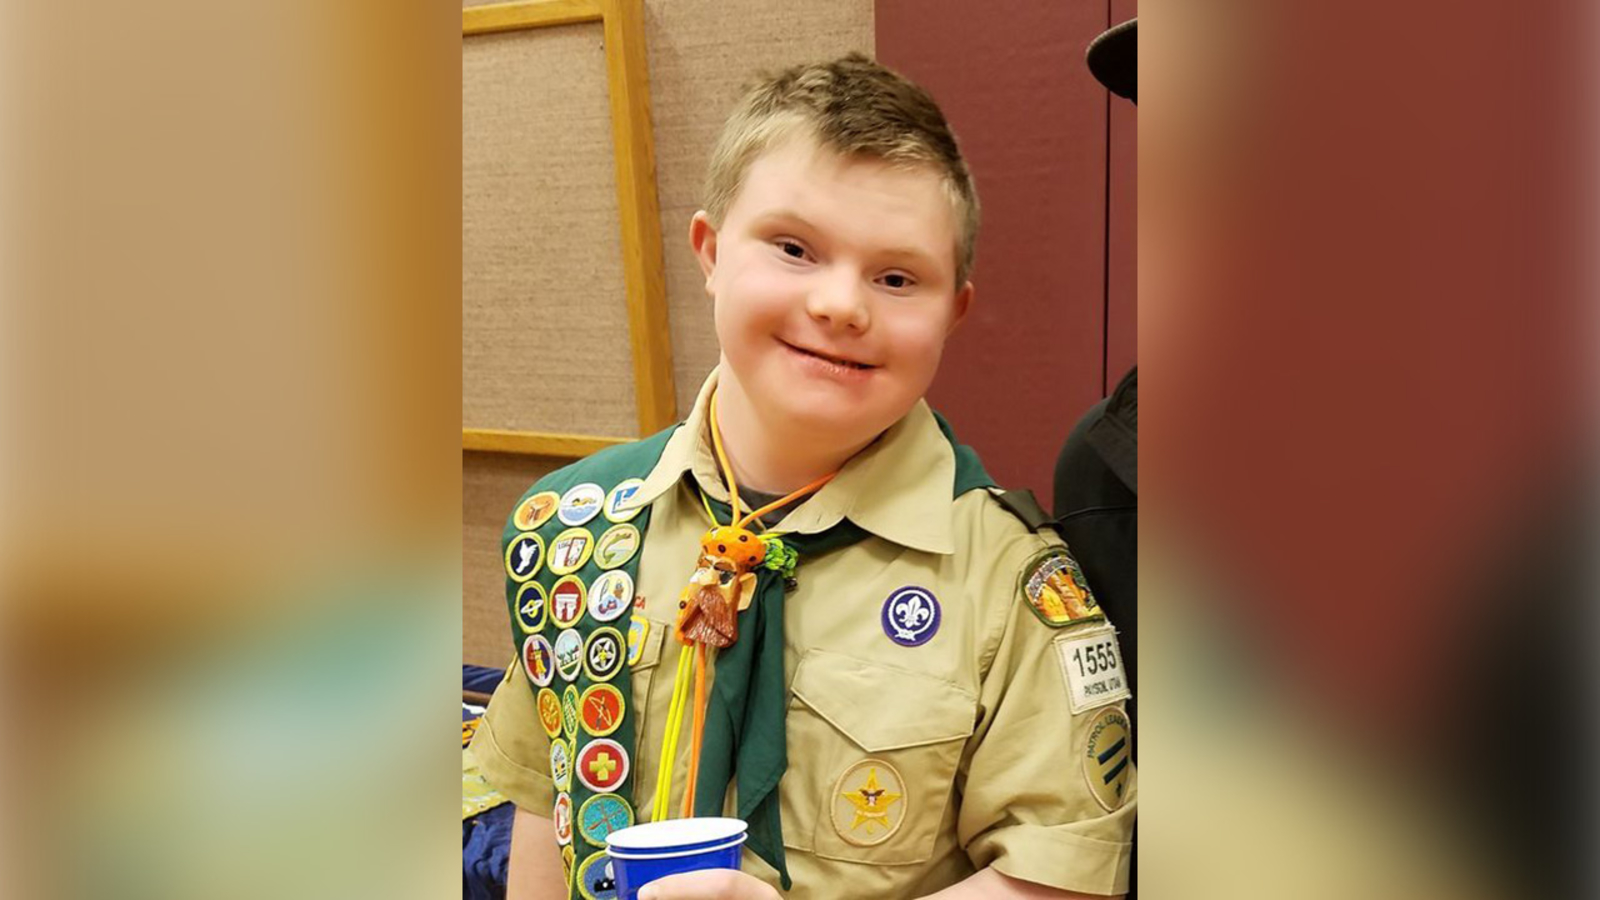 Father of boy with Down syndrome sues Boys Scouts of America